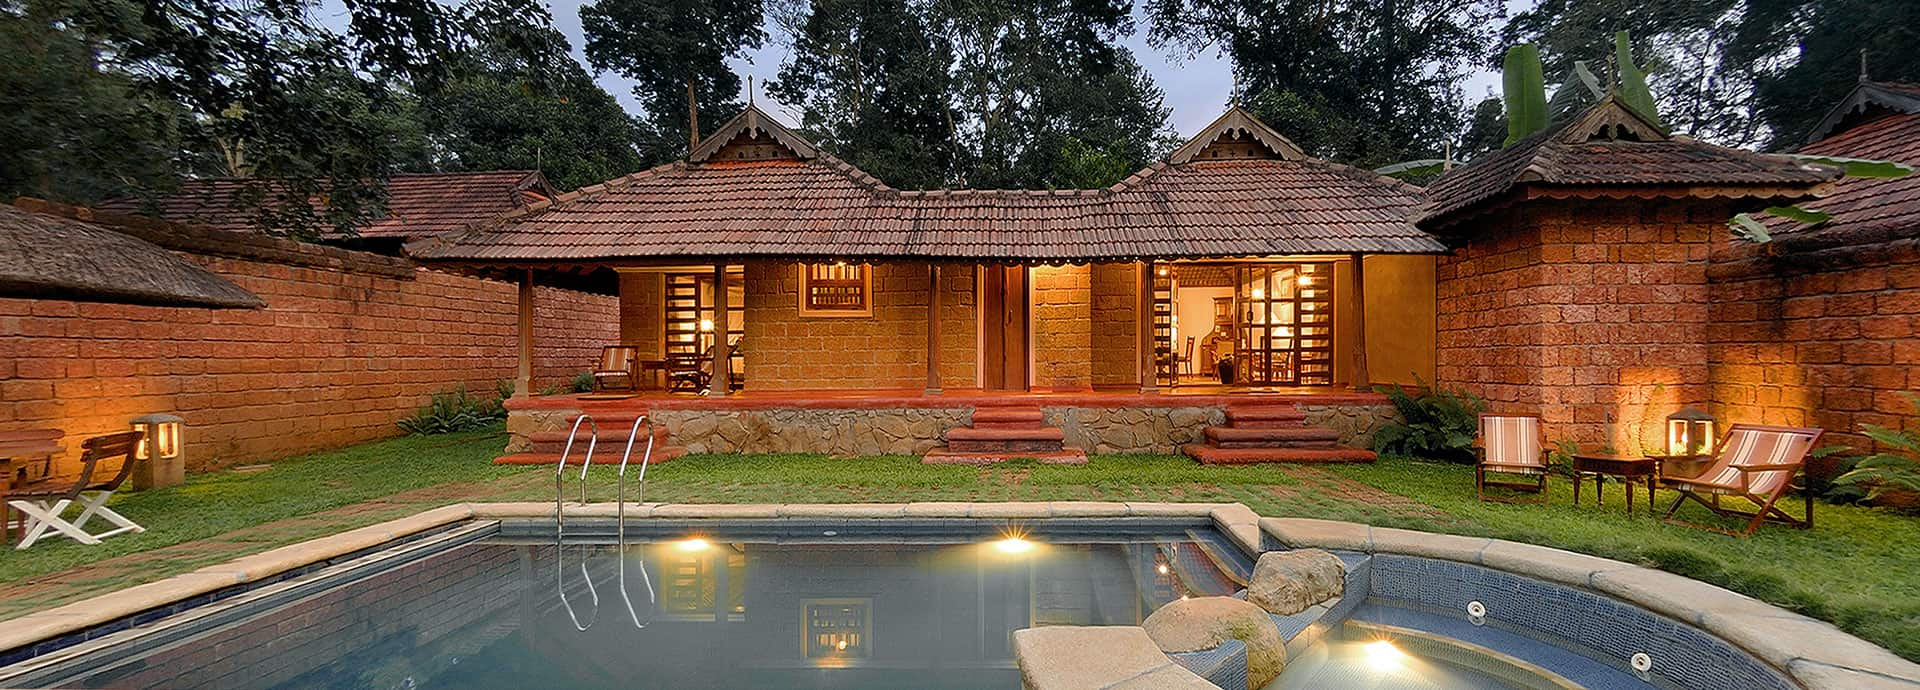 Coorg Cottages Coorg Accomodation Luxury Holiday Cottages